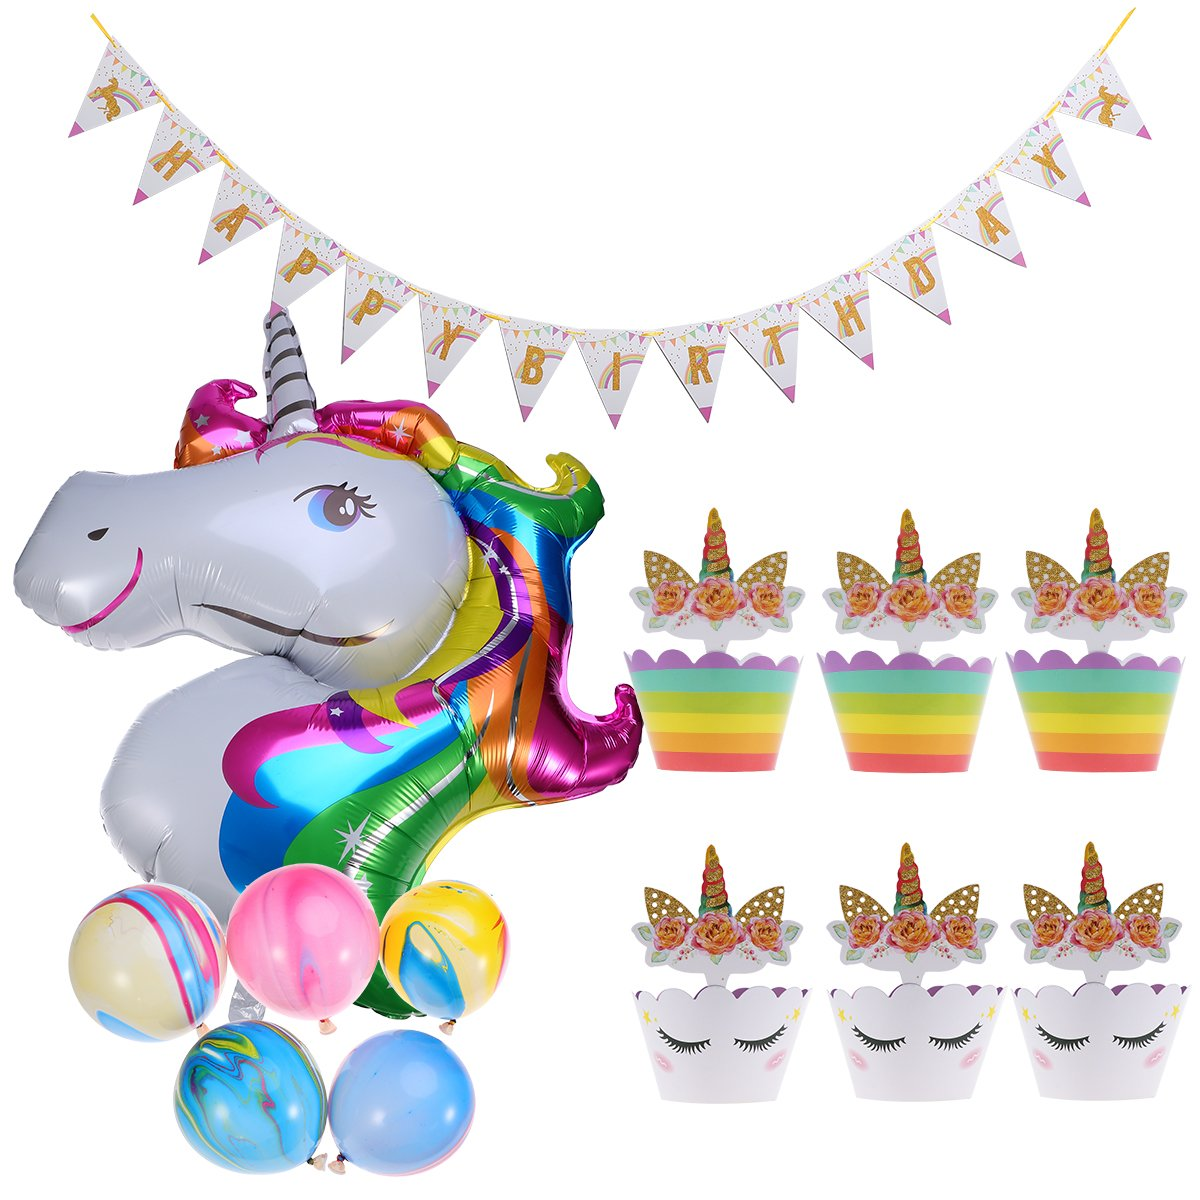 BESTOYARD Birthday Party Decoration Balloons Banners Garland Cake Toppers Wrappers Set